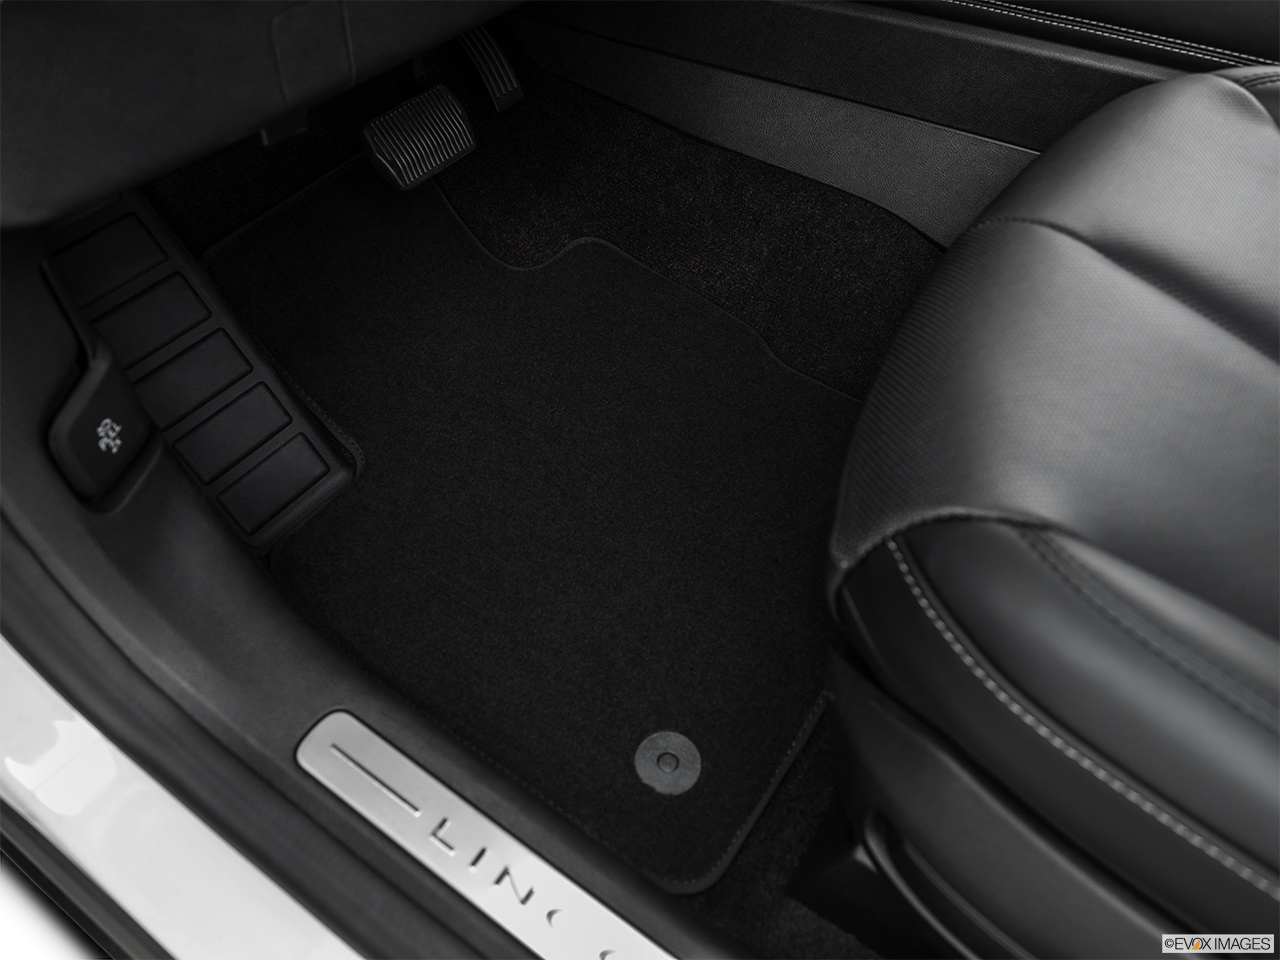 2020 Lincoln Corsair Standard Driver's floor mat and pedals. Mid-seat level from outside looking in.